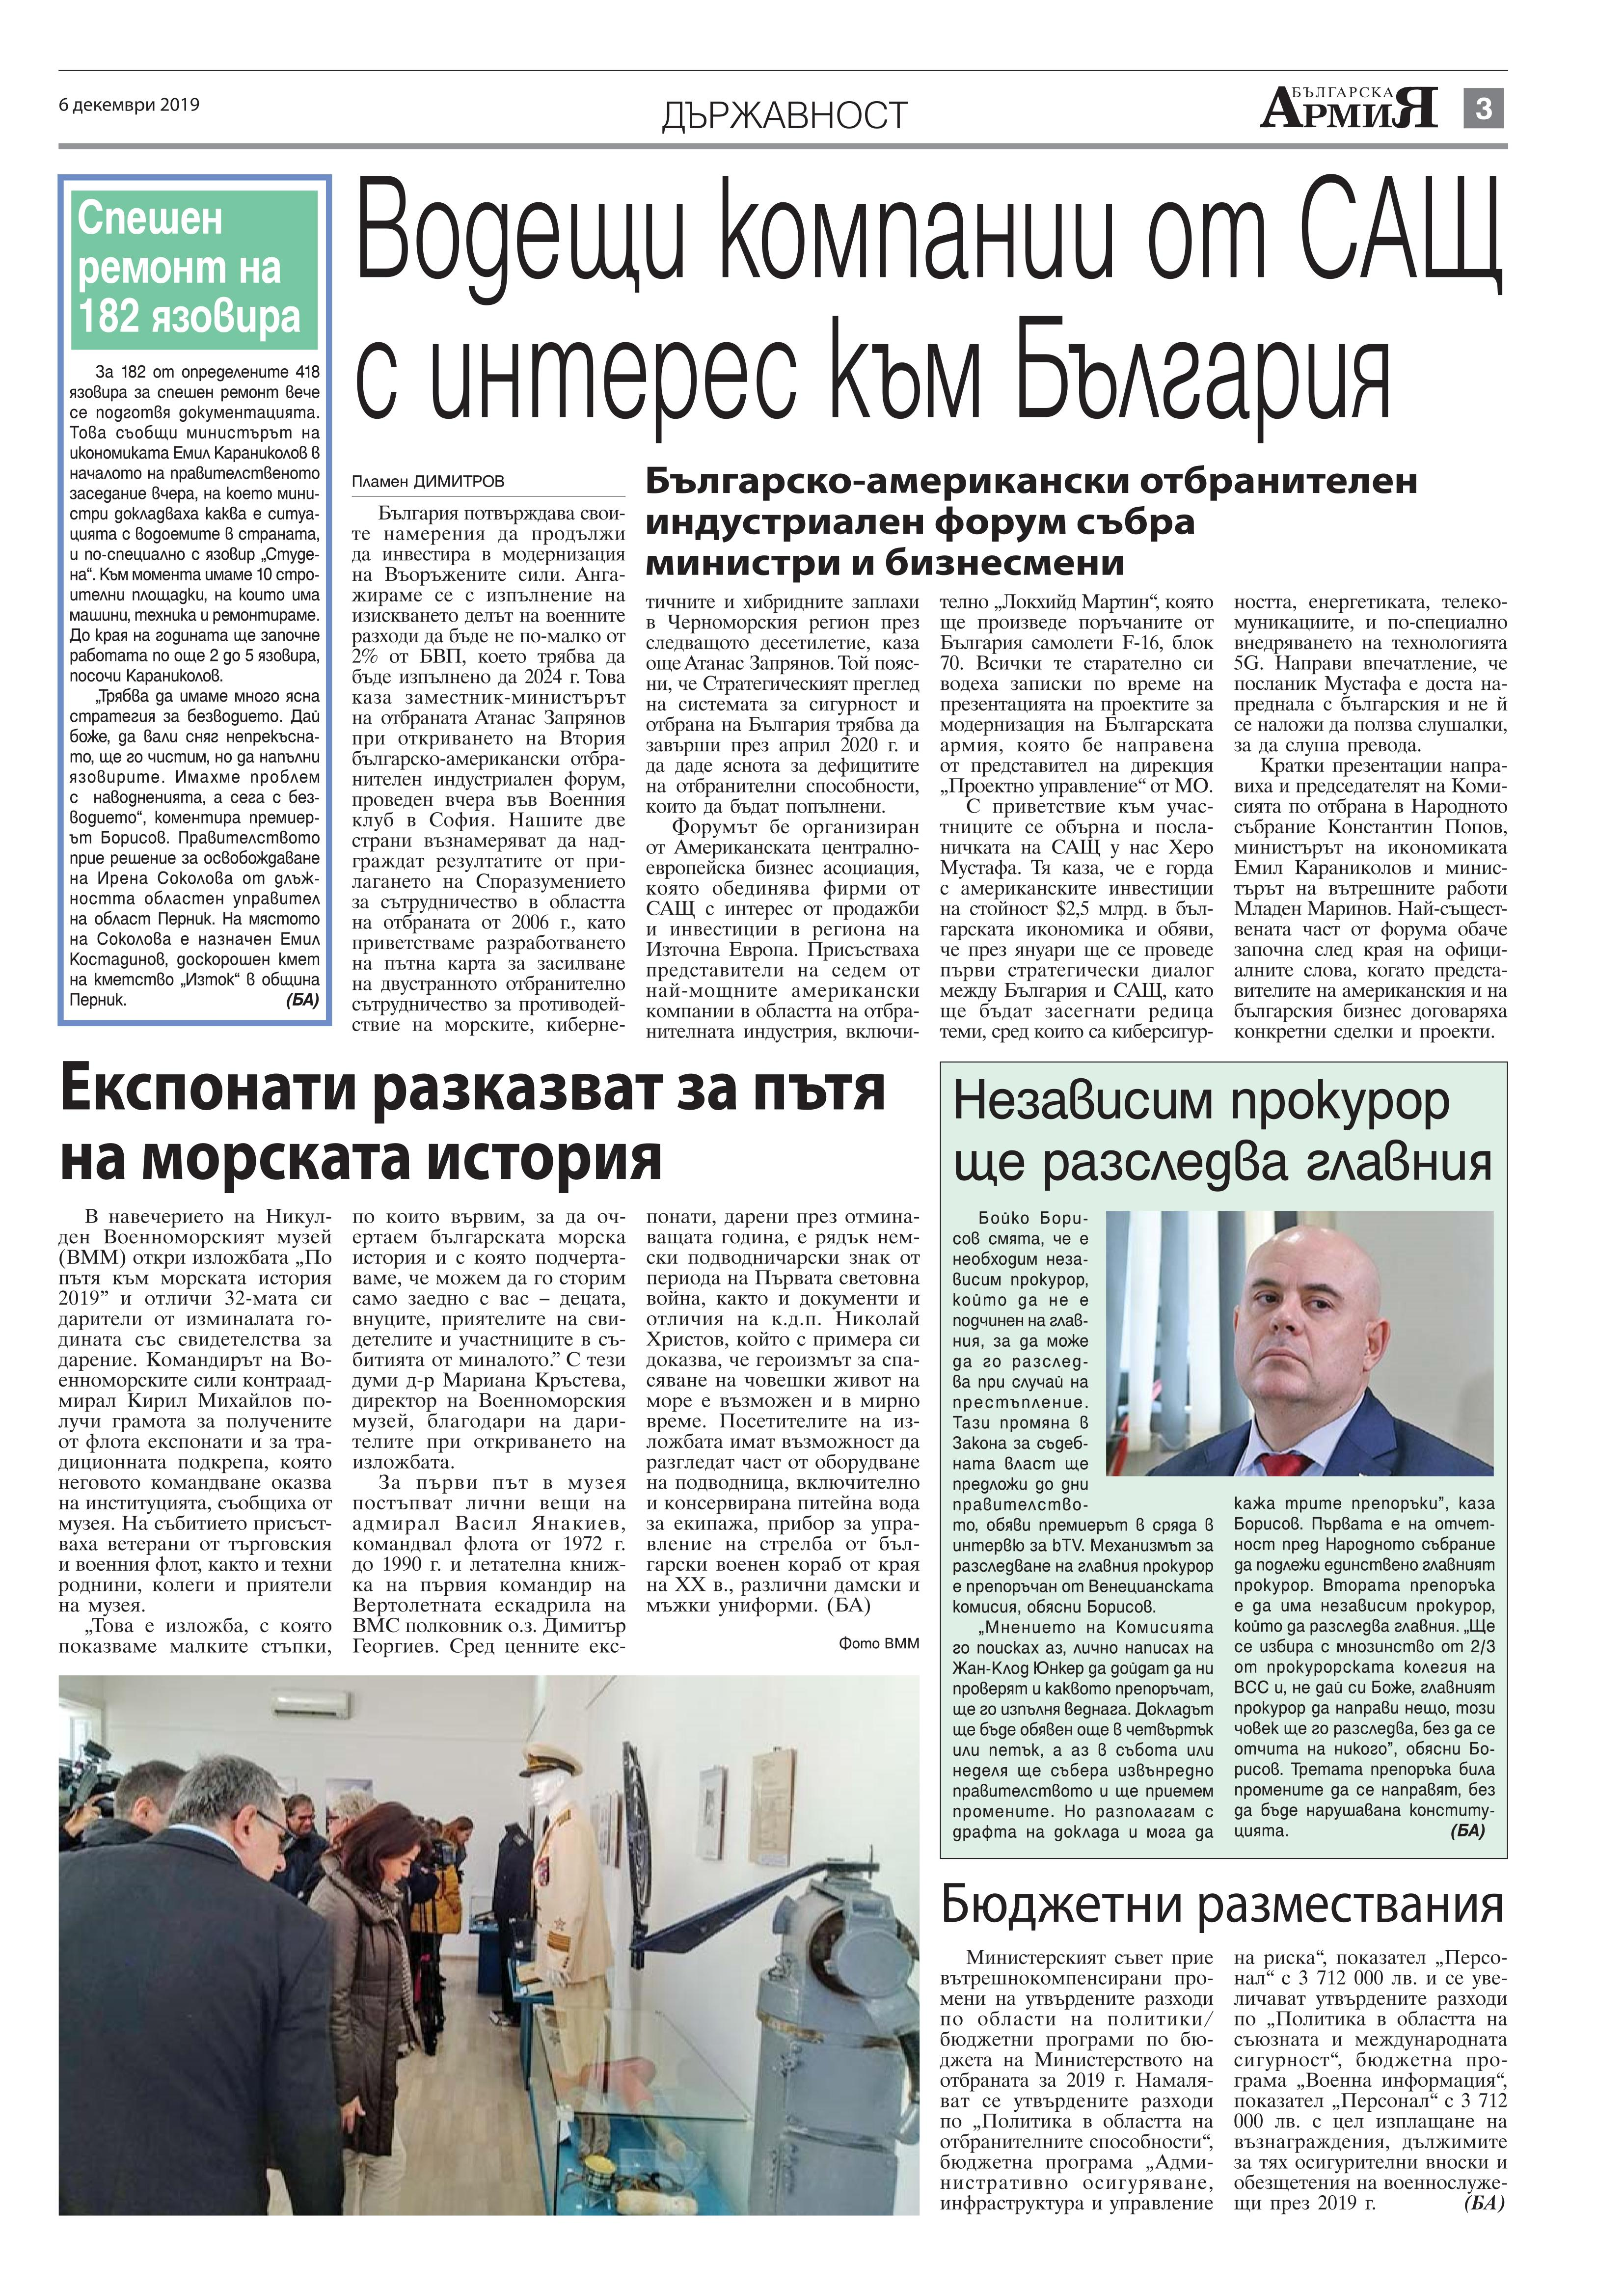 https://armymedia.bg/wp-content/uploads/2015/06/03.page1_-115.jpg